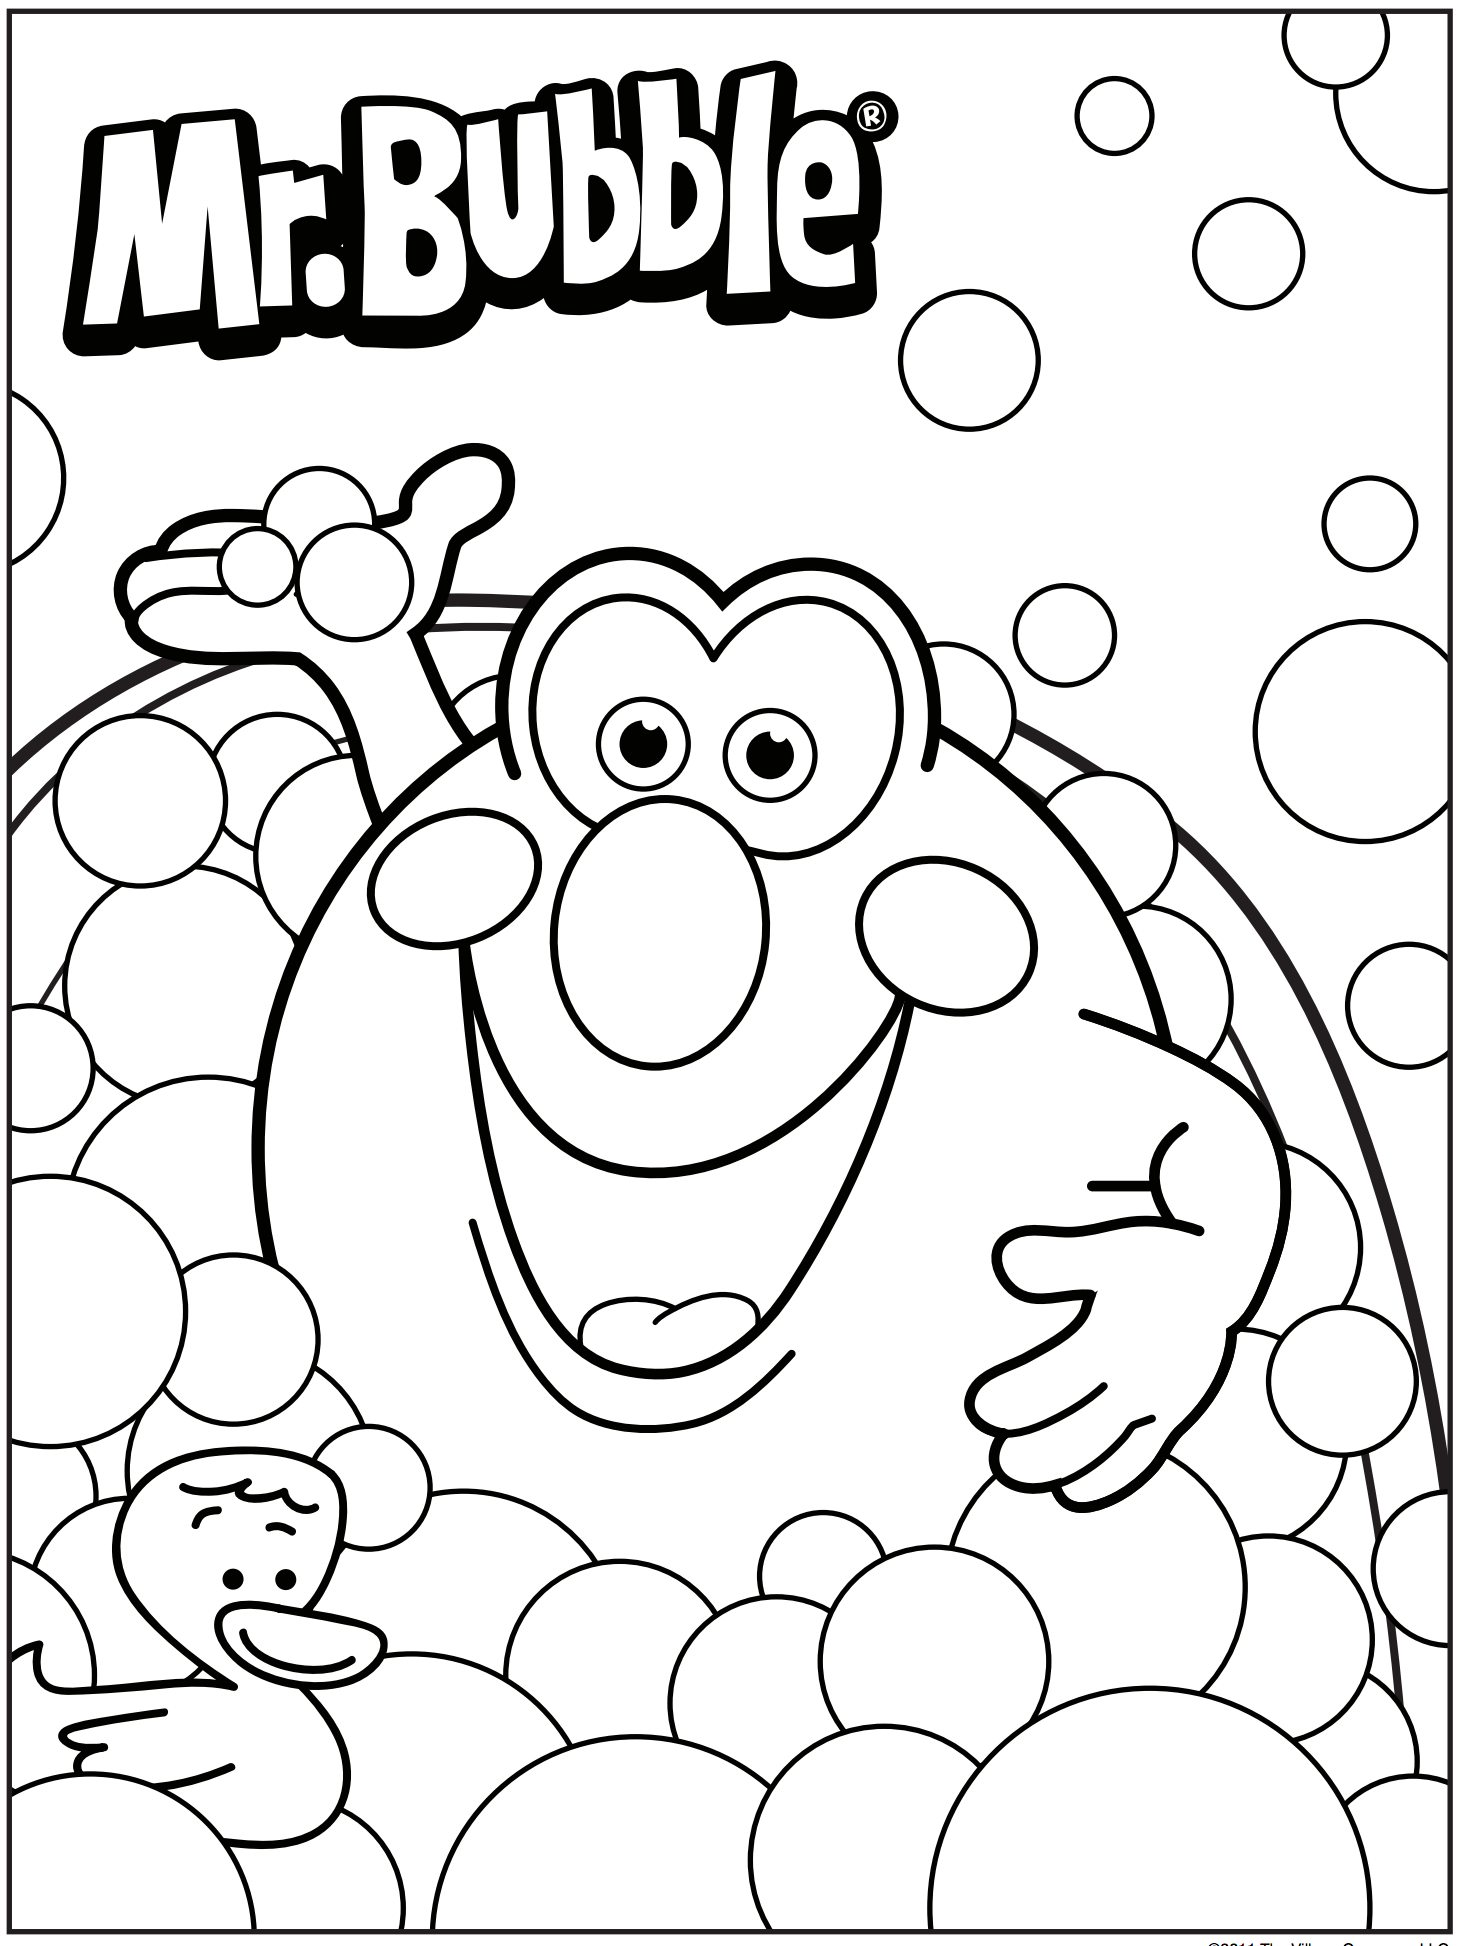 Uncategorized Bubbles Coloring Page bath time 3d coloring pages kid activities and craft pages